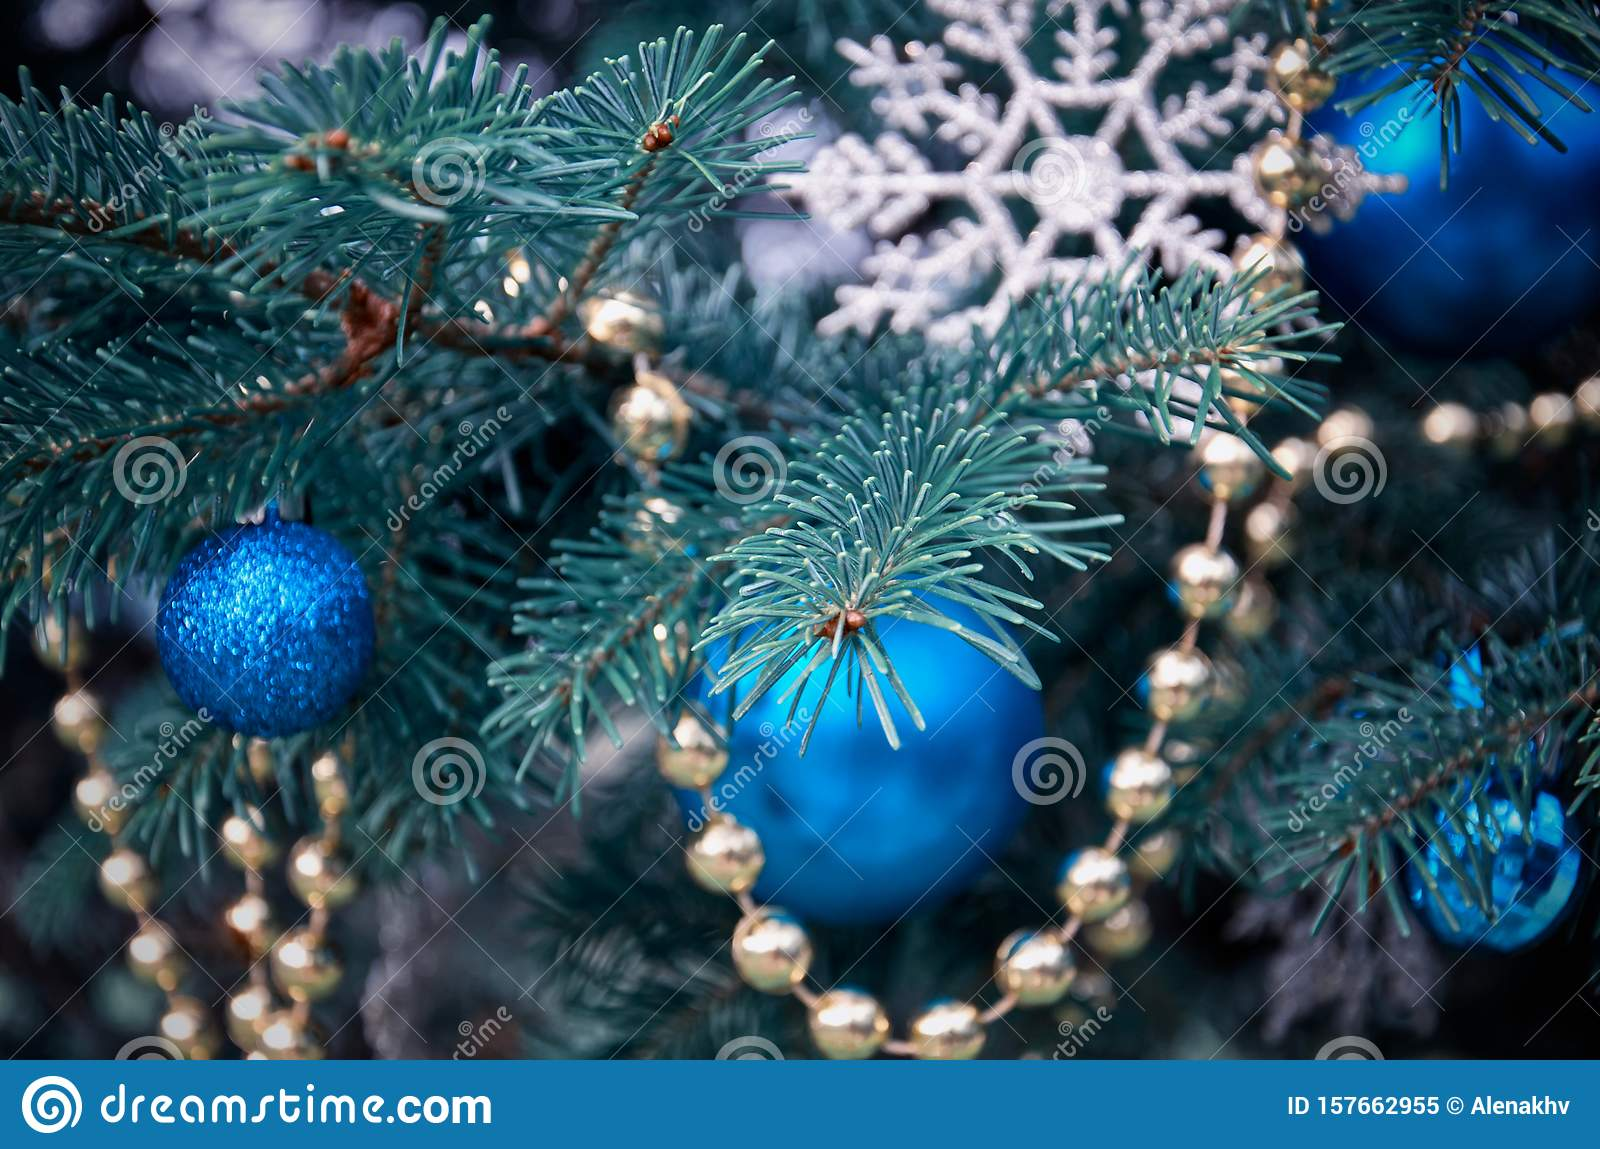 Close Up Of A Christmas Tree With Rose Gold And Turquoise Decorations Balls Snowflakes Bows Beads On A Blurry Background Stock Image Image Of Bokeh Decorations 157662955